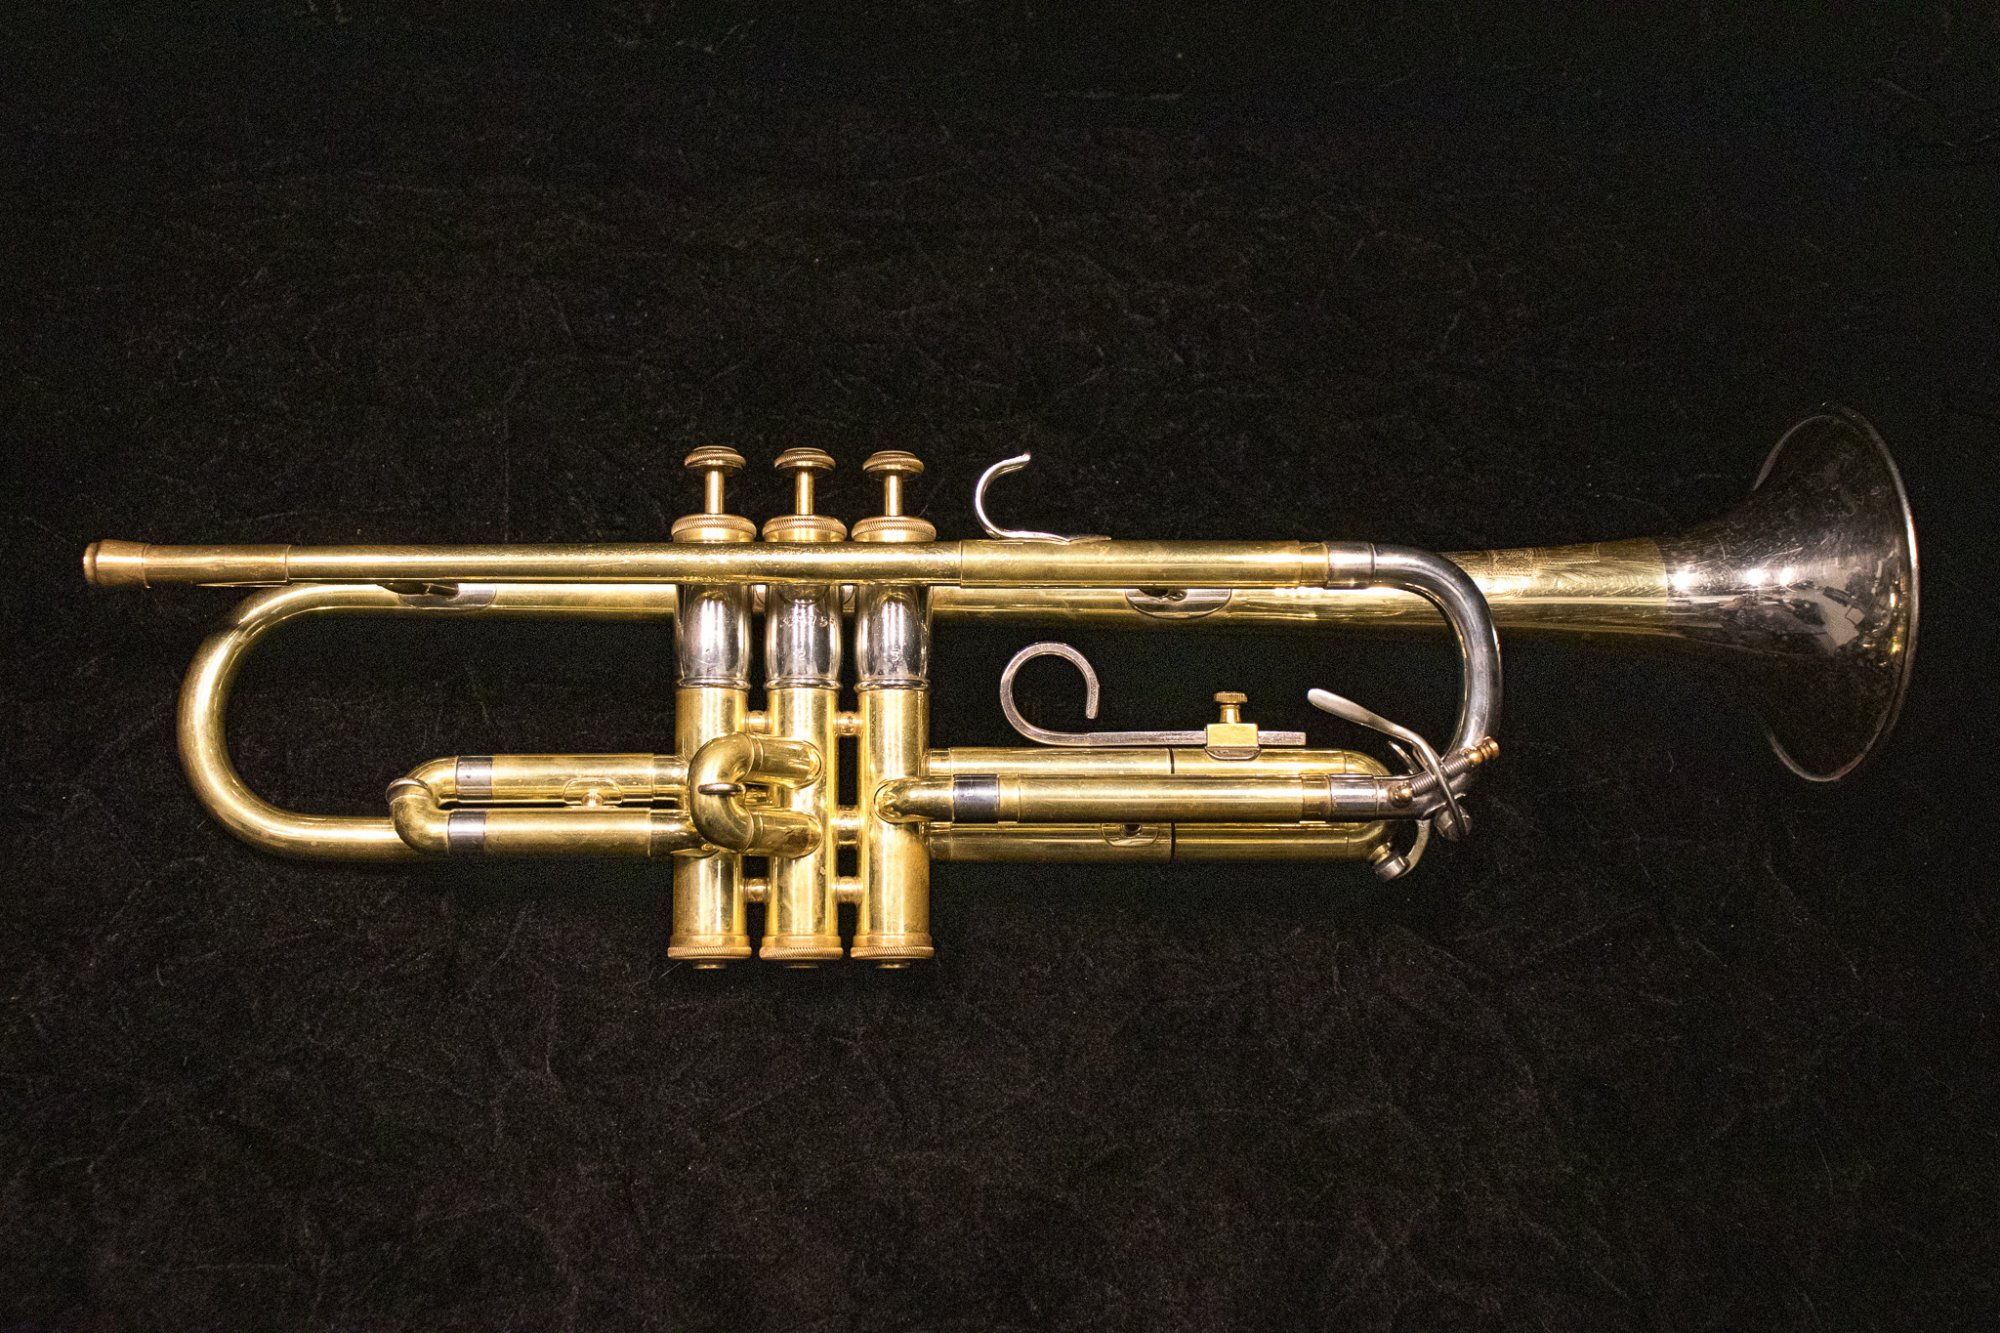 1959 Olds Studio Bb Trumpet